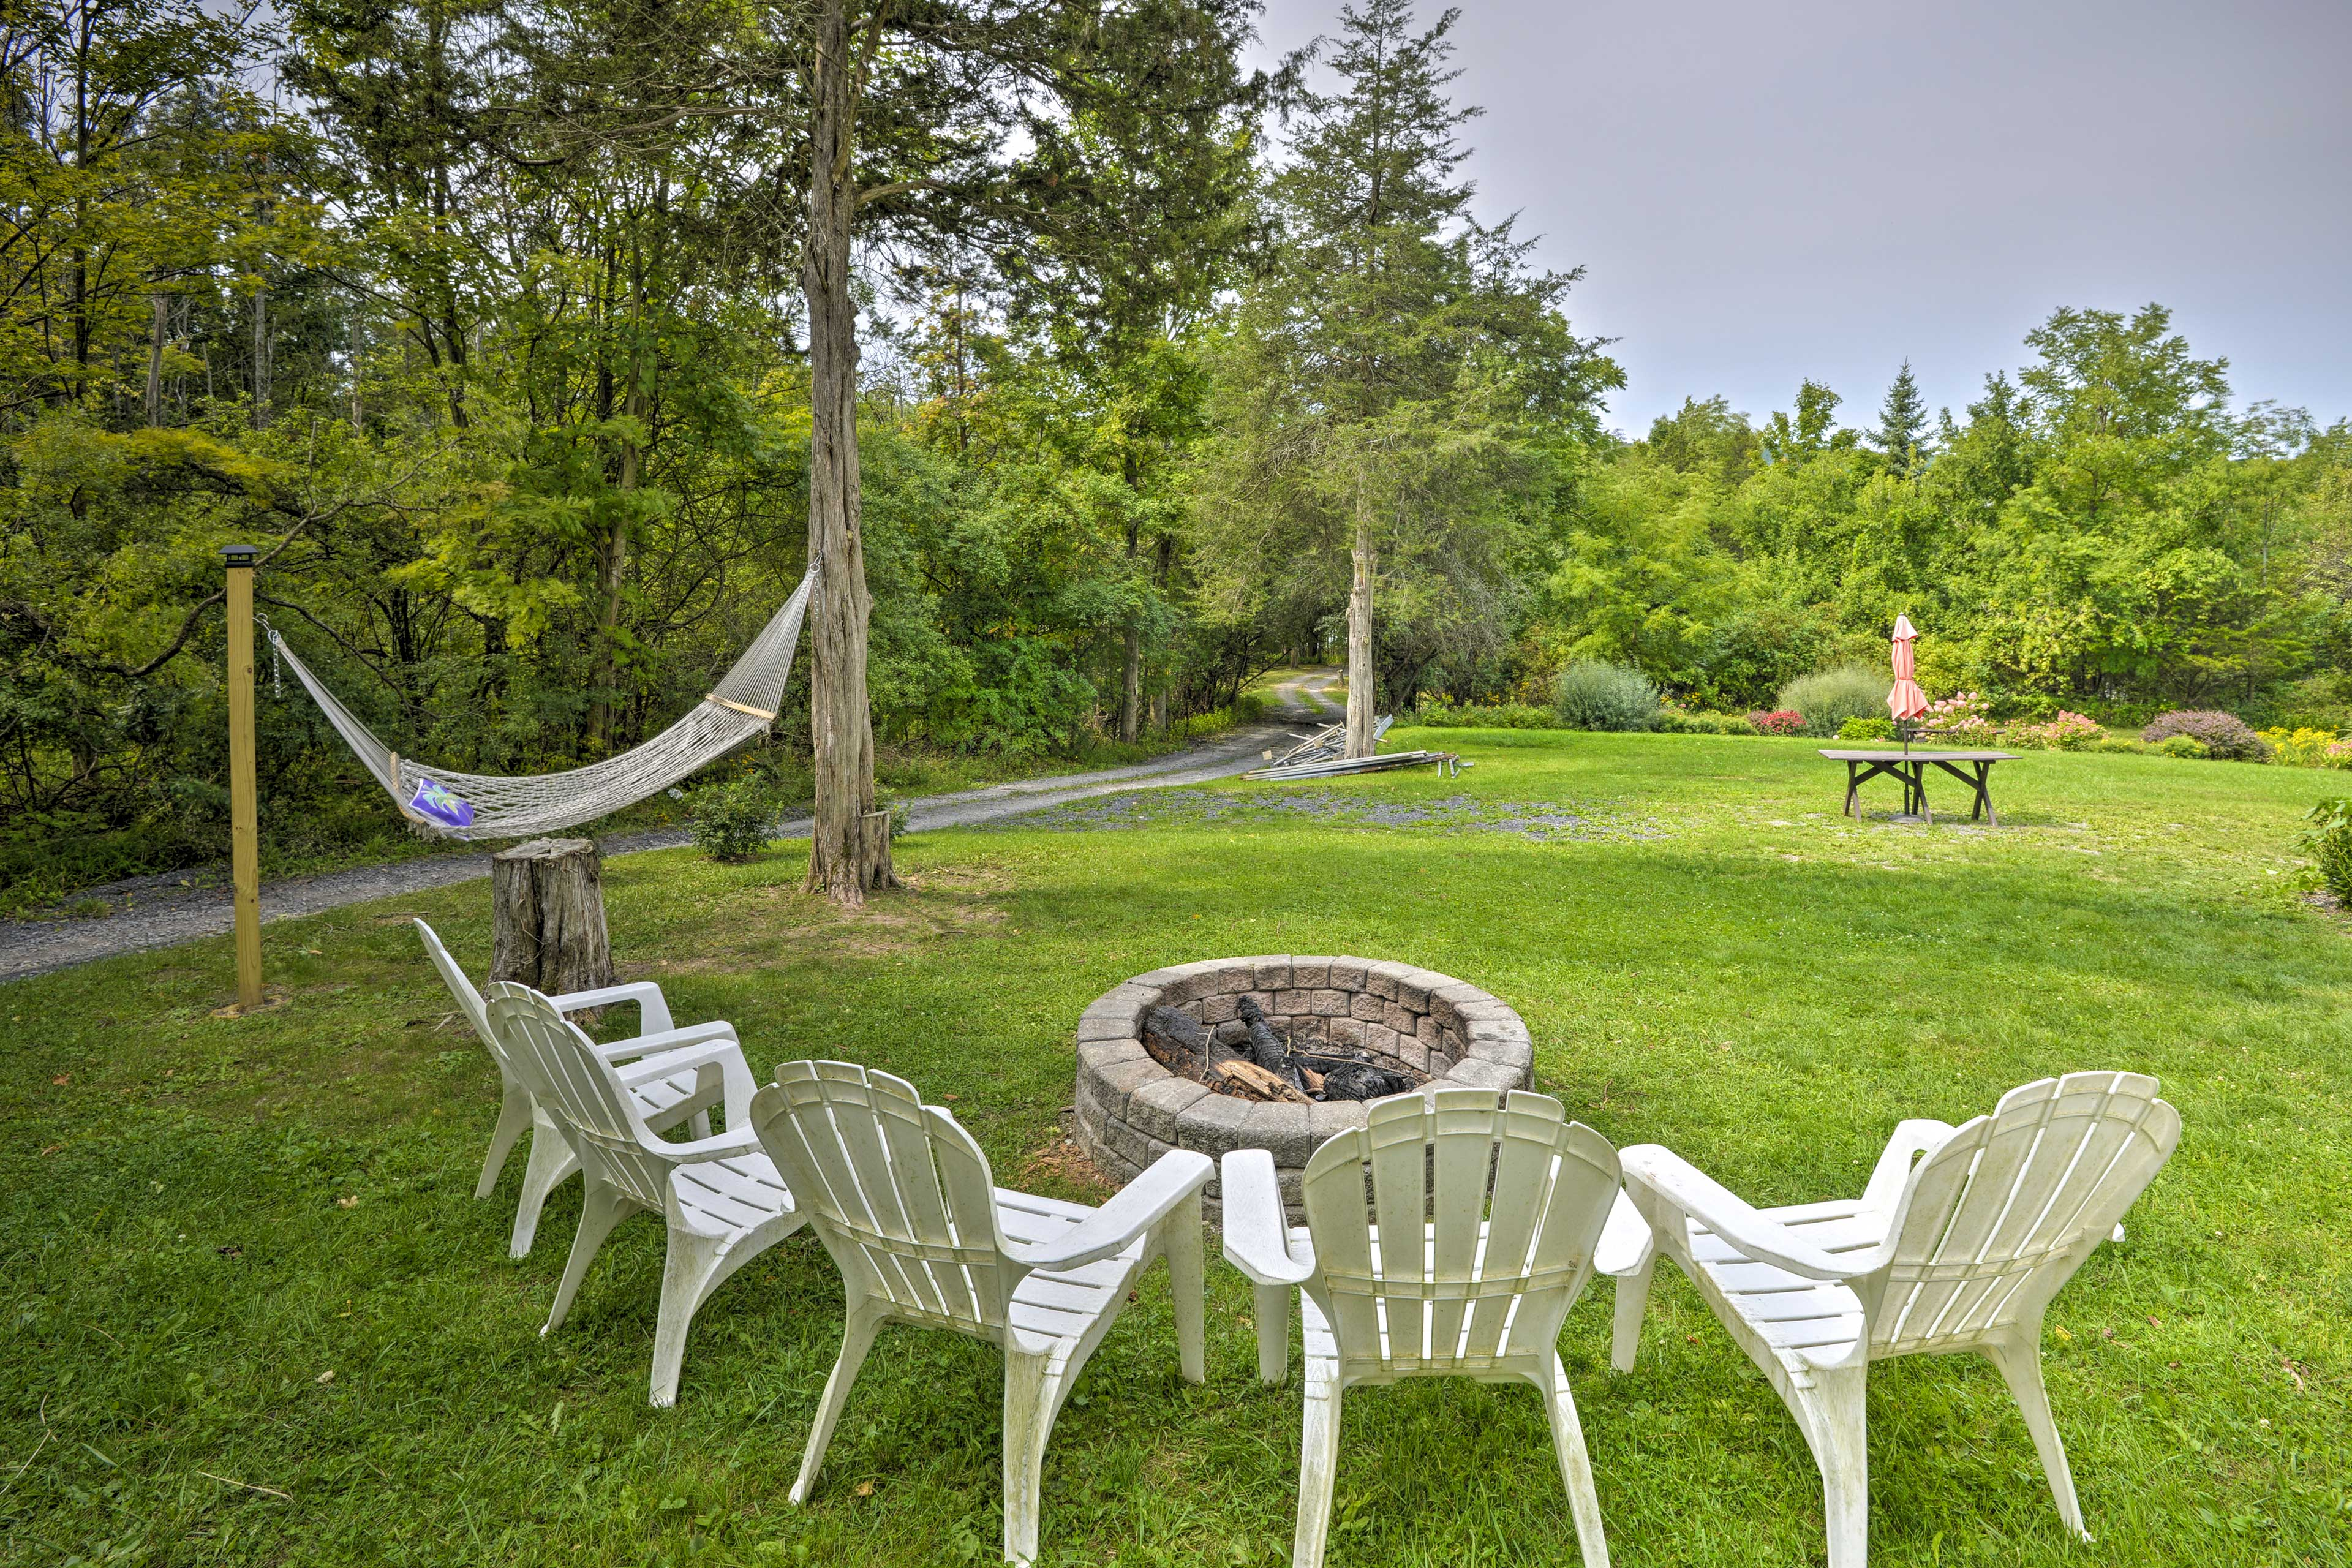 Gather around the fire pit after a day in the sun.